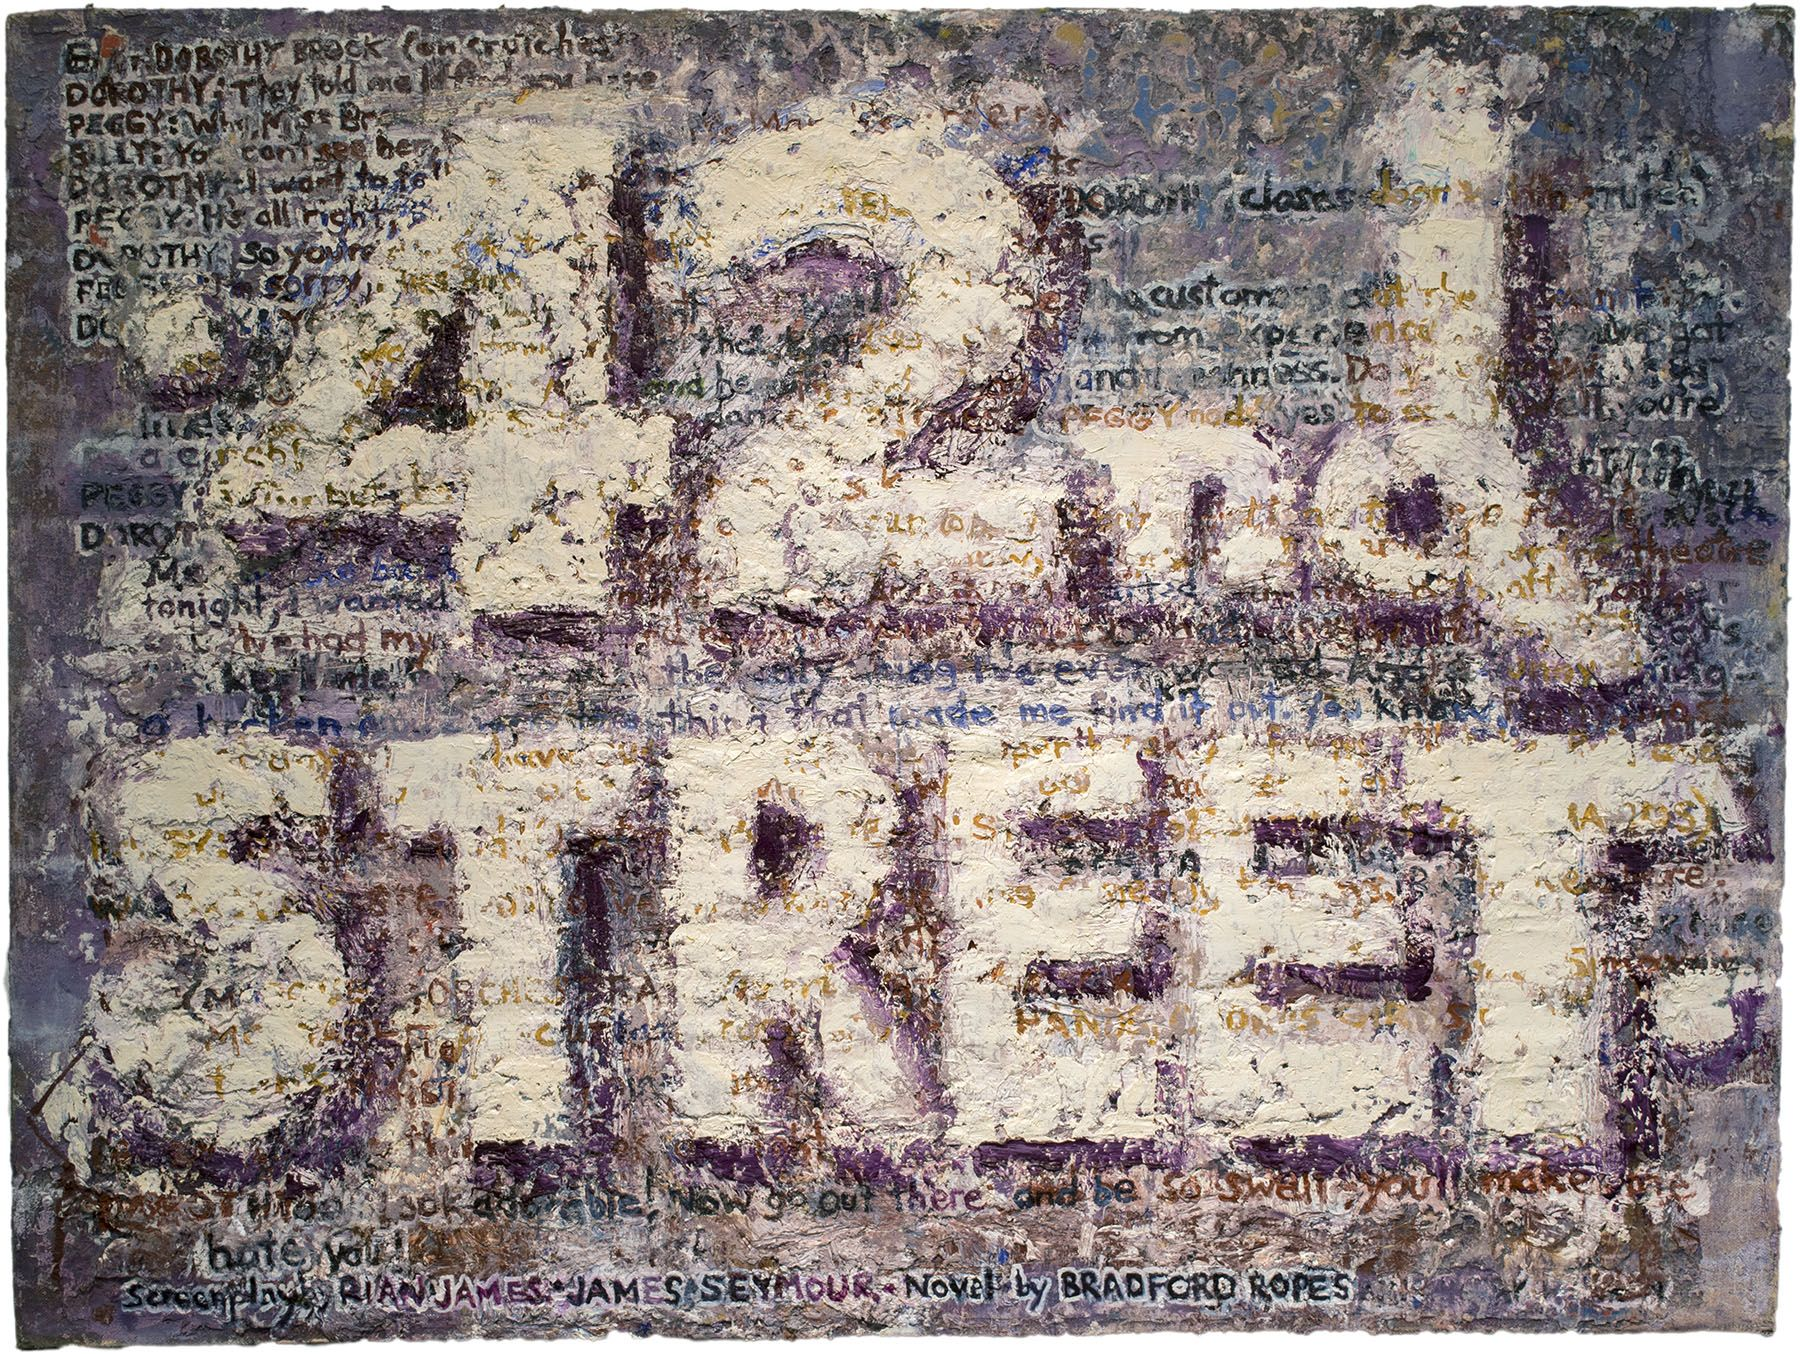 Image of 42nd Street (Main Title and Dialogue), 2015